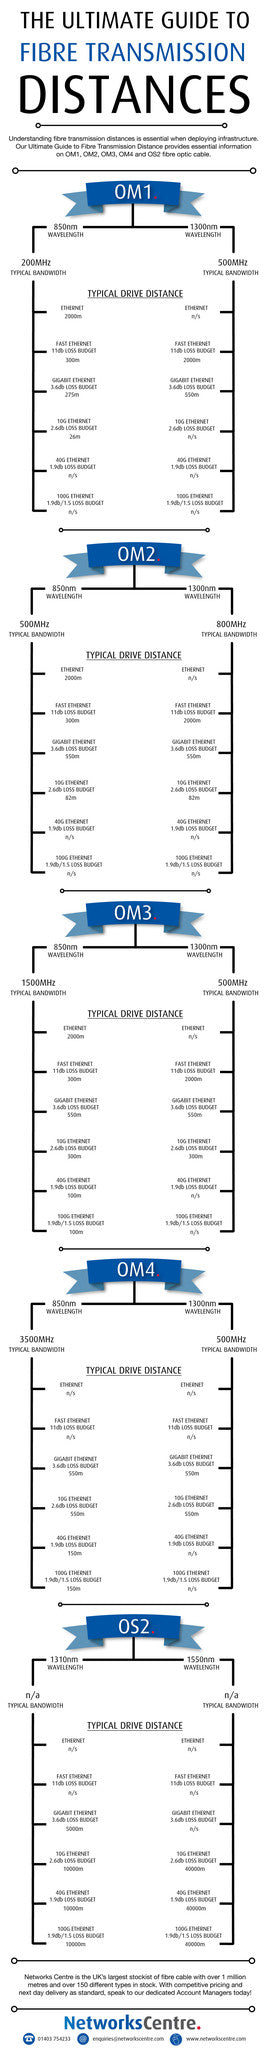 Fibre Optic Transmission Distances Infographic